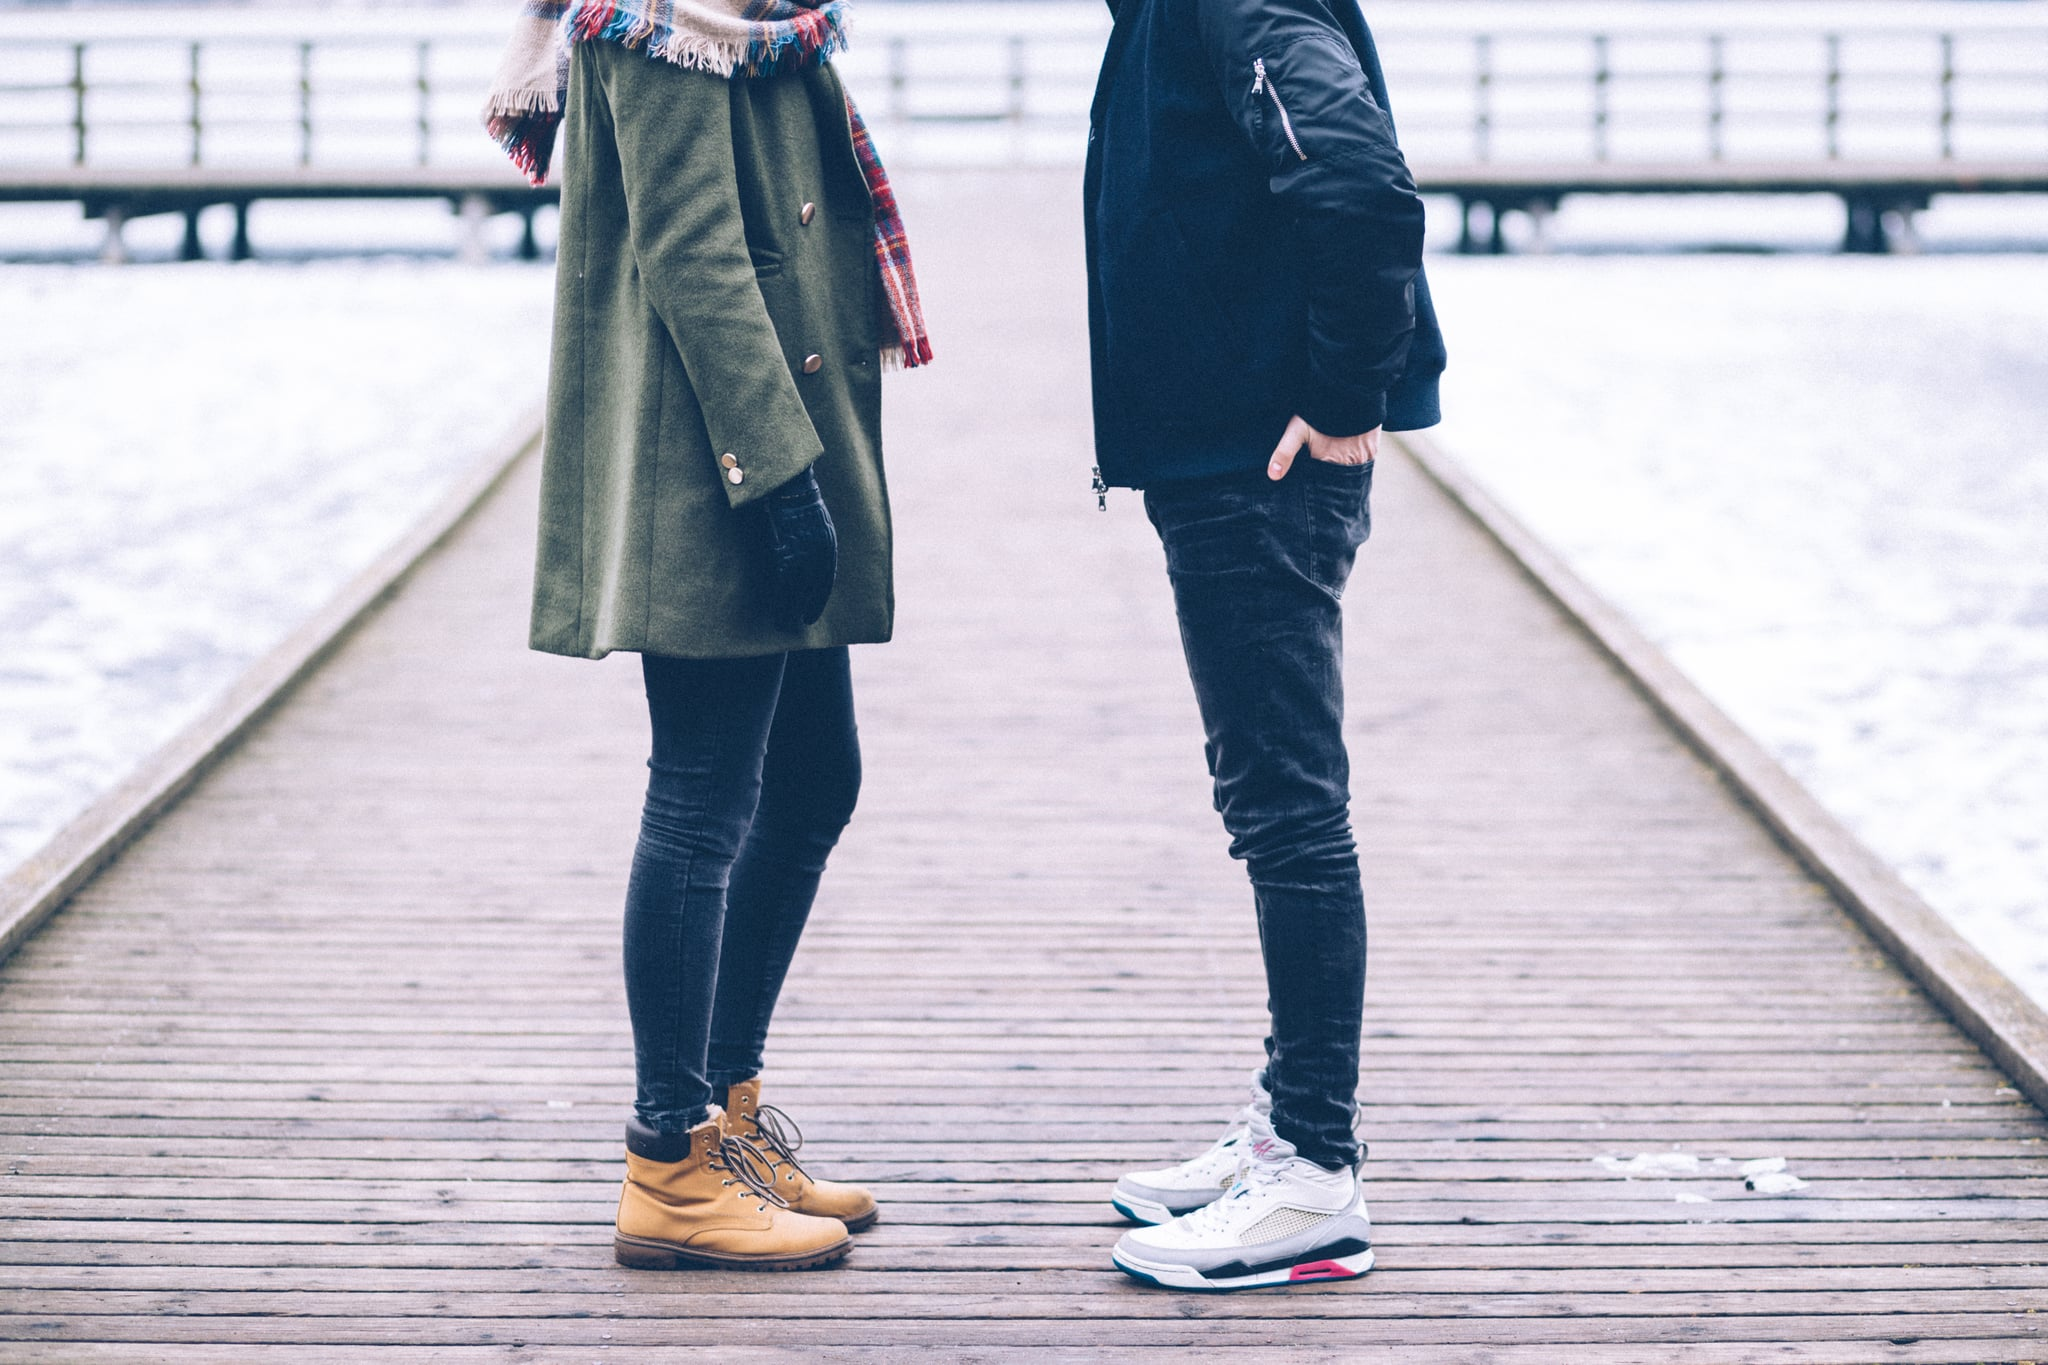 6 Tiny Habits That Are Slowly Ruining Your Relationship